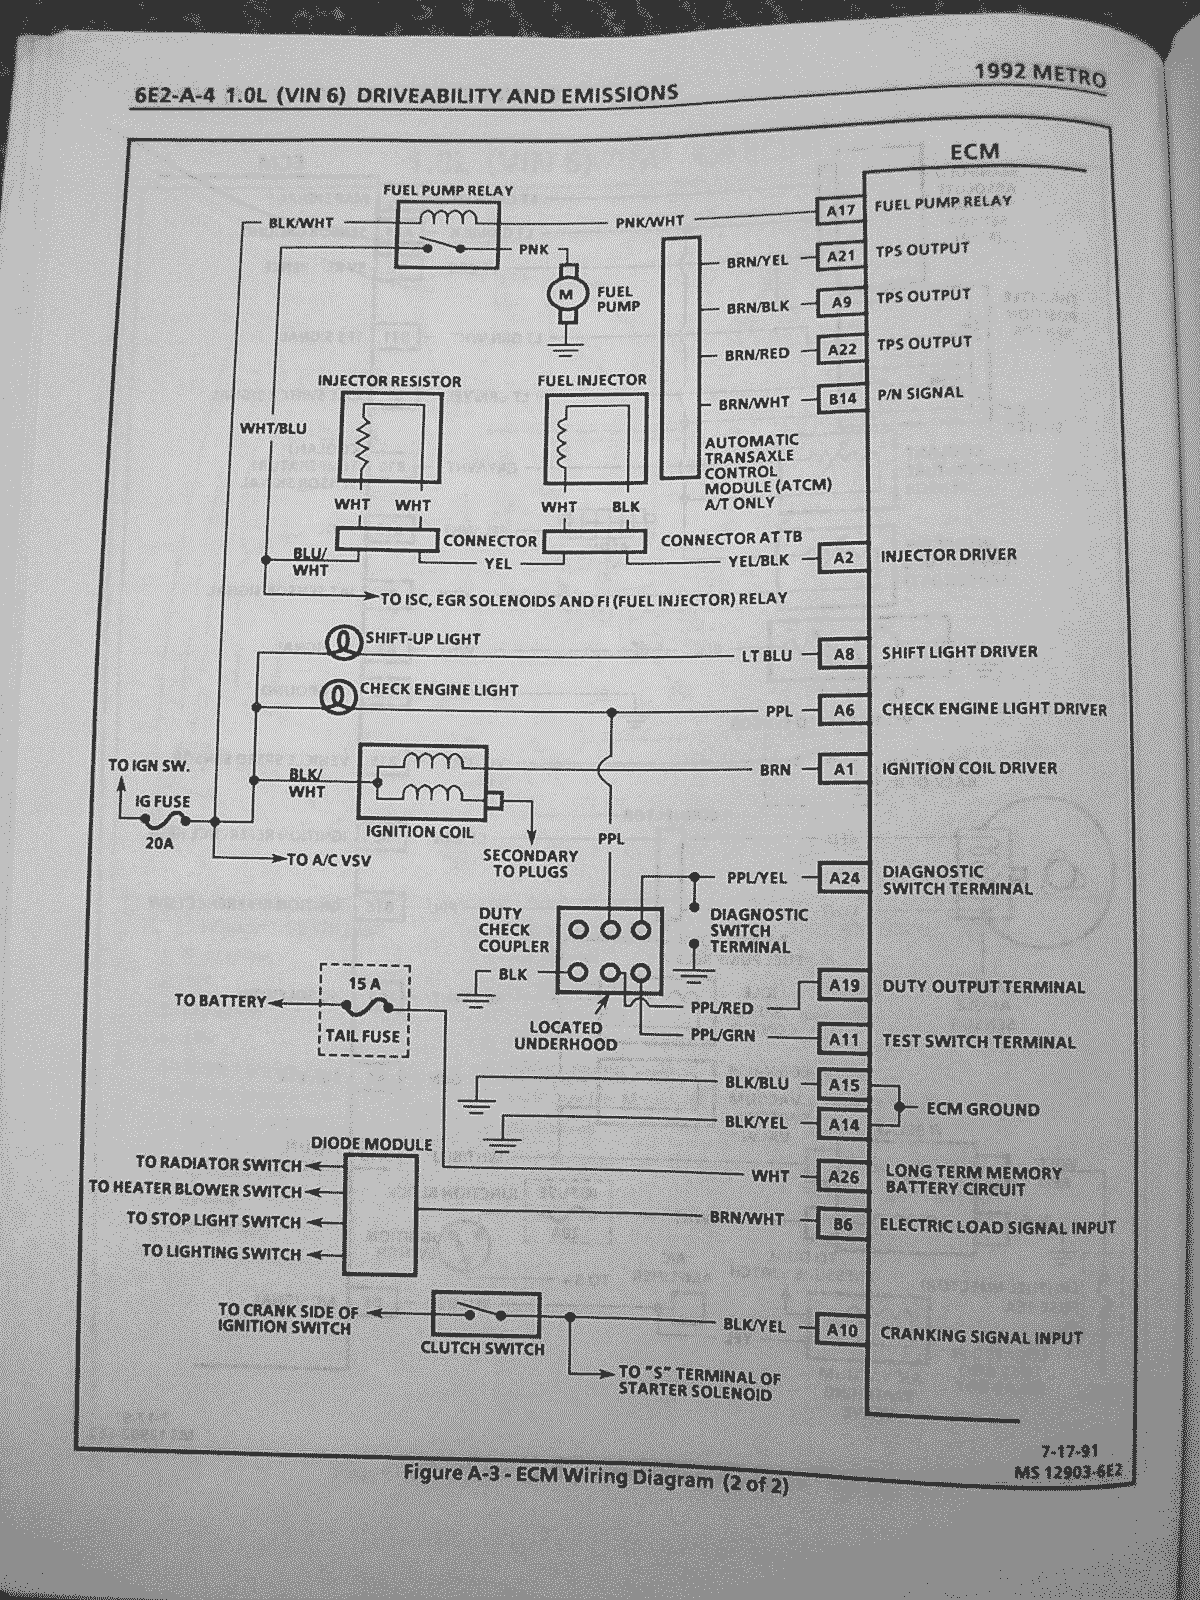 Geo Metro and Suzuki Swift Wiring Diagrams – MetroXFi.com on 2007 forenza fuse diagram, 2007 forenza cooling system, 2007 forenza oil filter, 2007 forenza water pump, 2006 forenza wiring diagram,